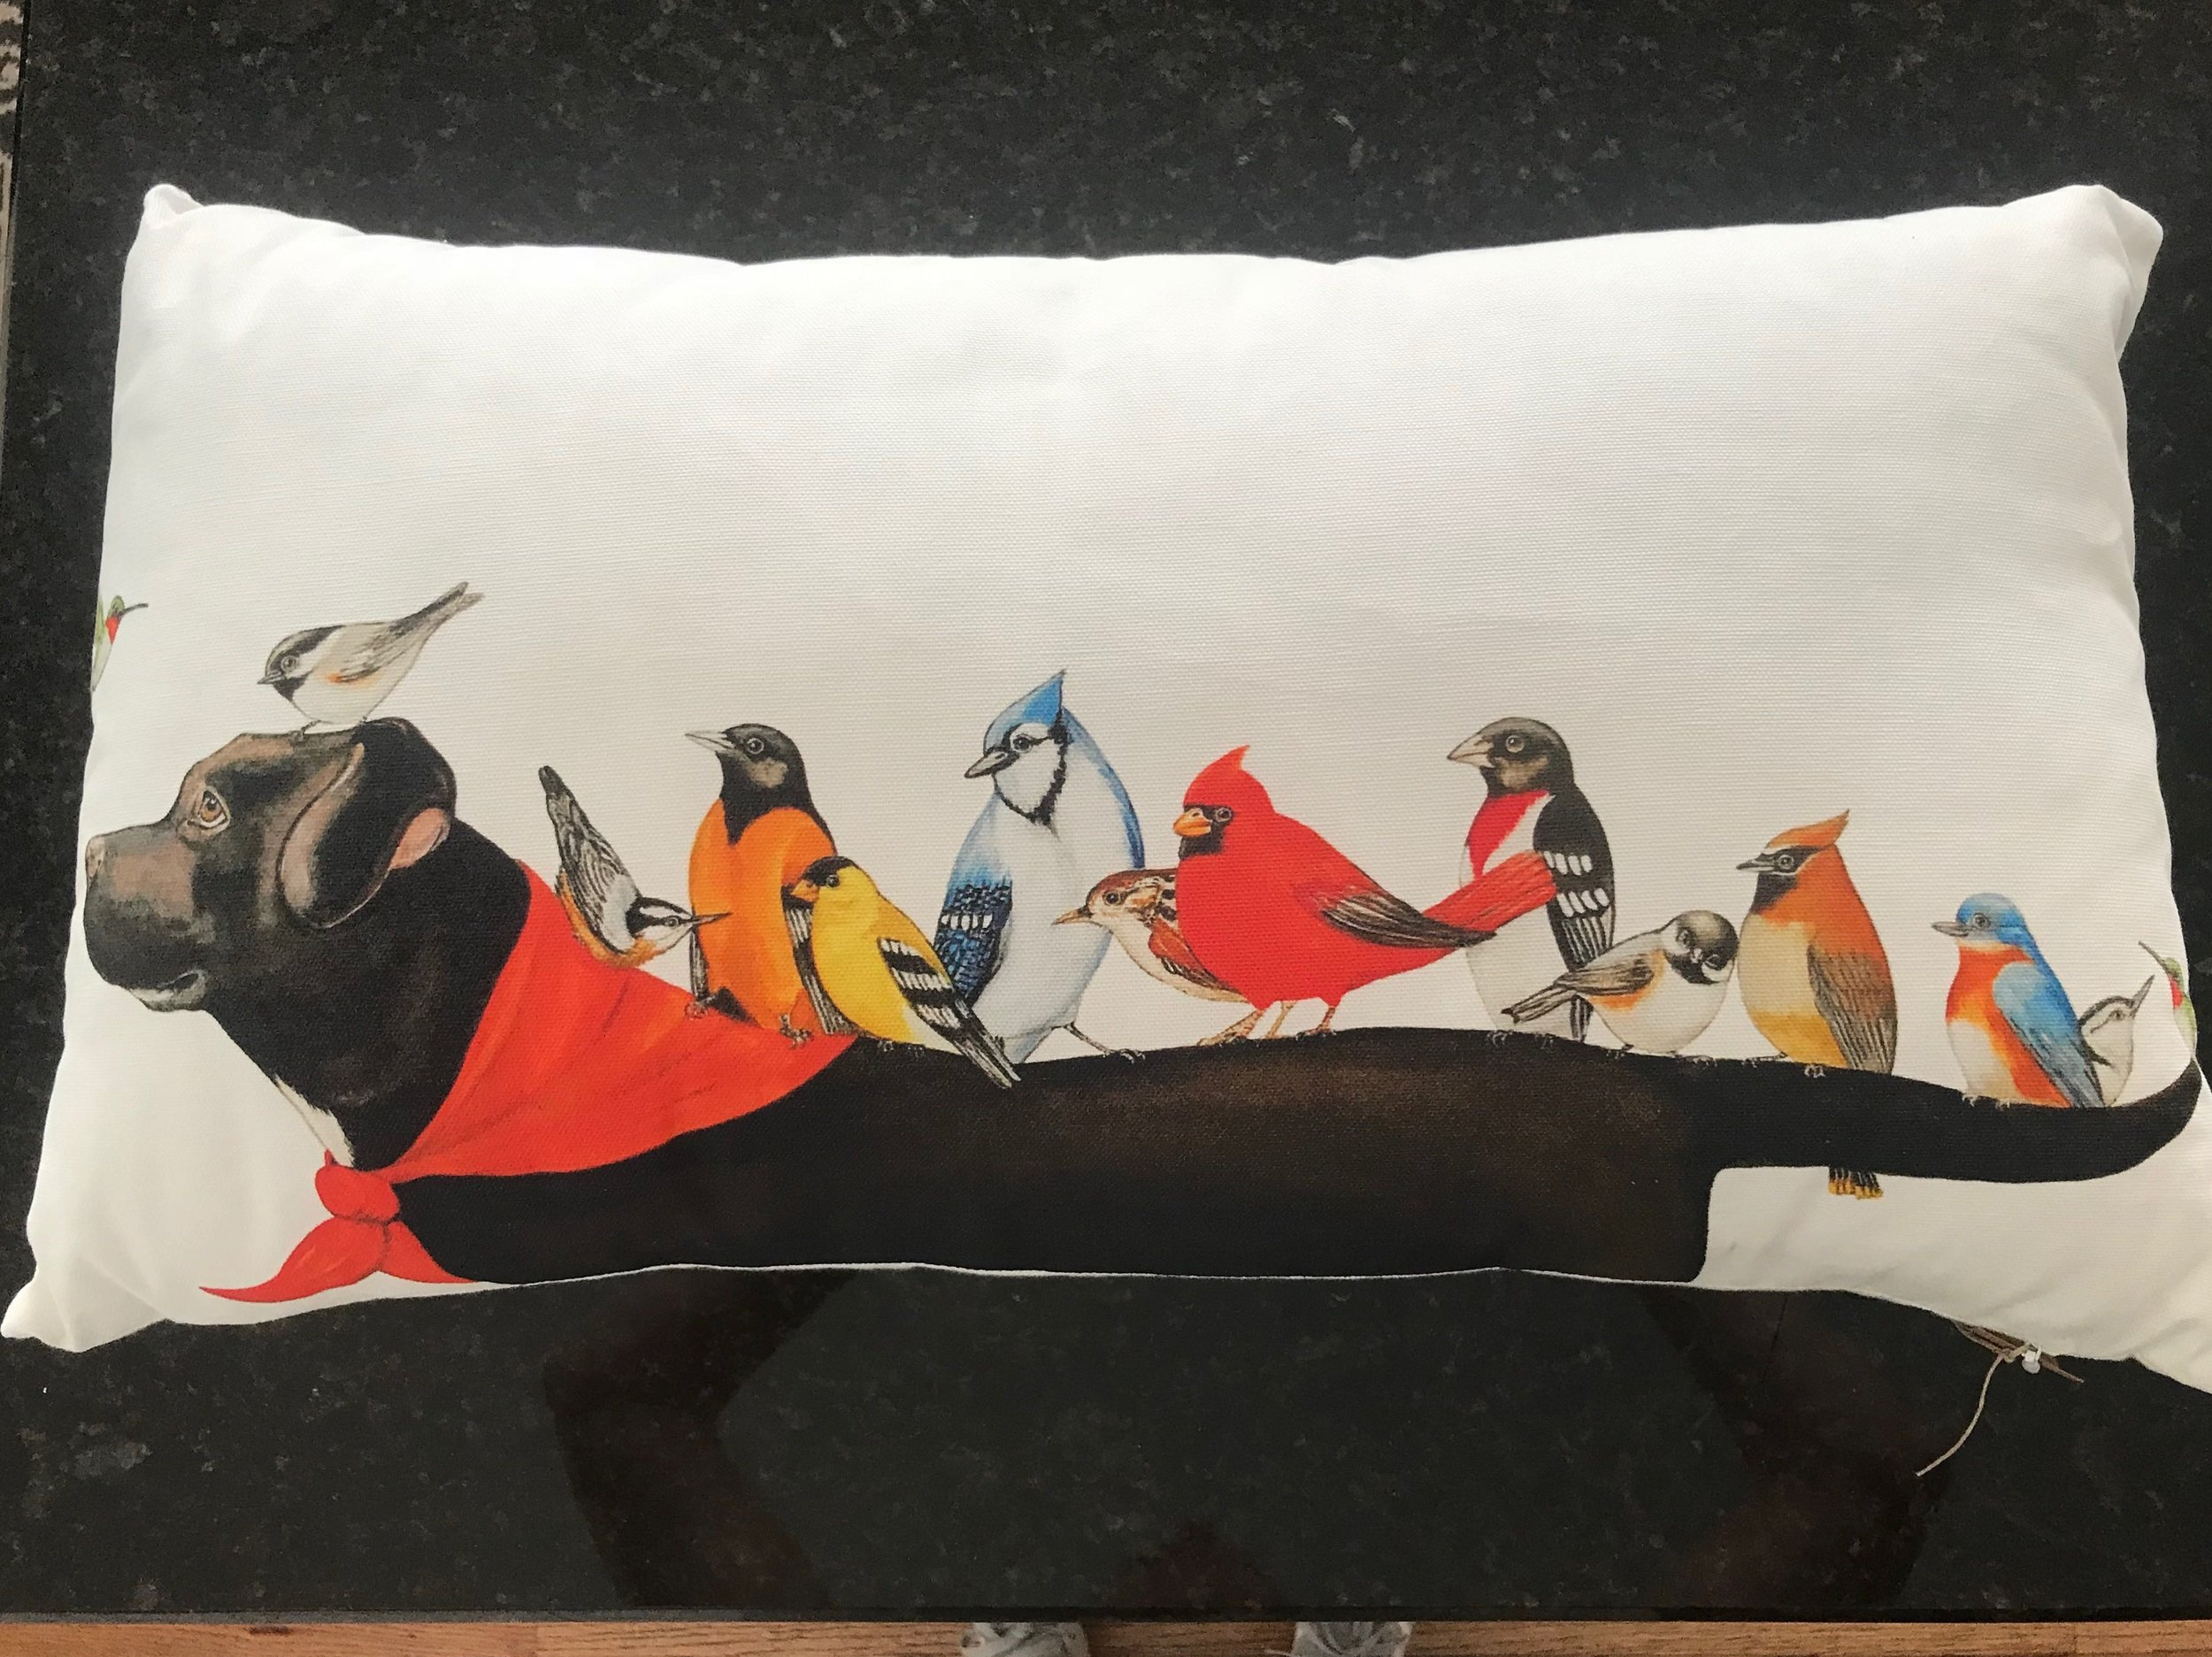 LABRADOR & BIRD PILLOW   Animal lovers will adore this 22x11 stuffed pillow with an acrylic on canvas painting of a labrador with his bird friends.  DONOR: Emily Austin VALUE: $40